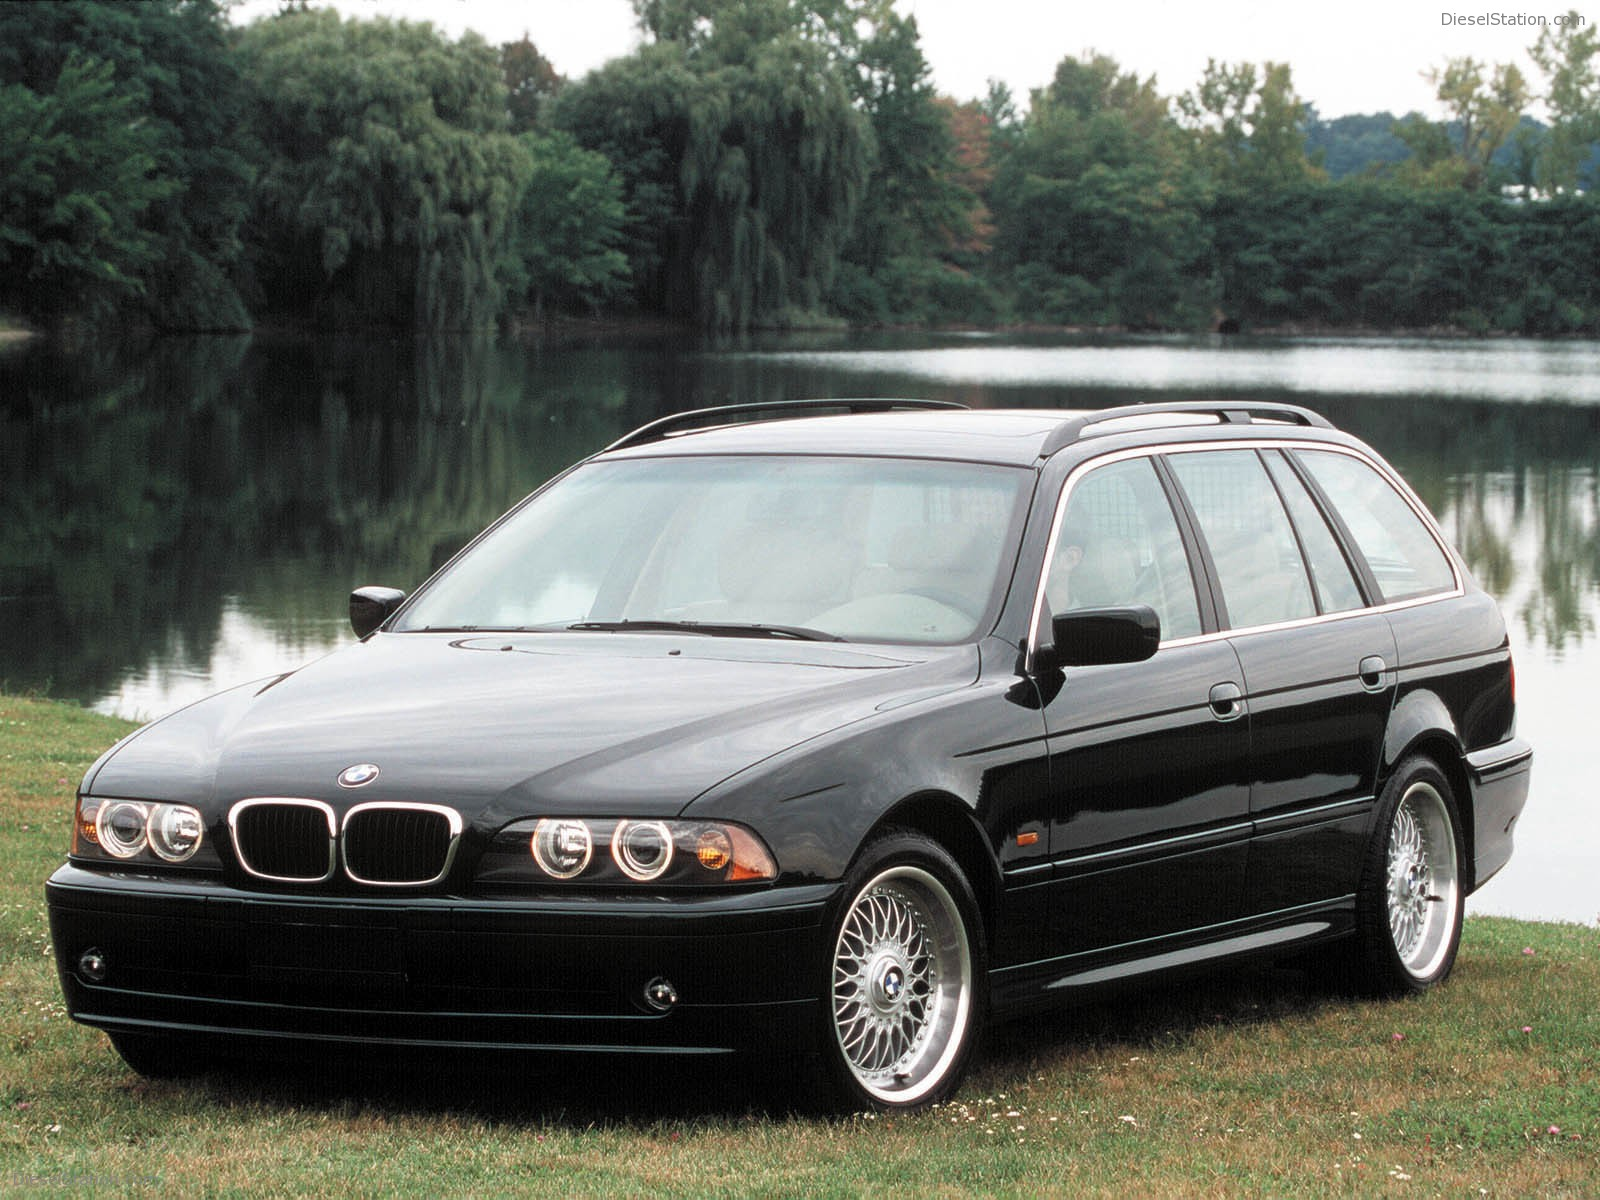 BMW 5 series 525ix 1996 photo - 9